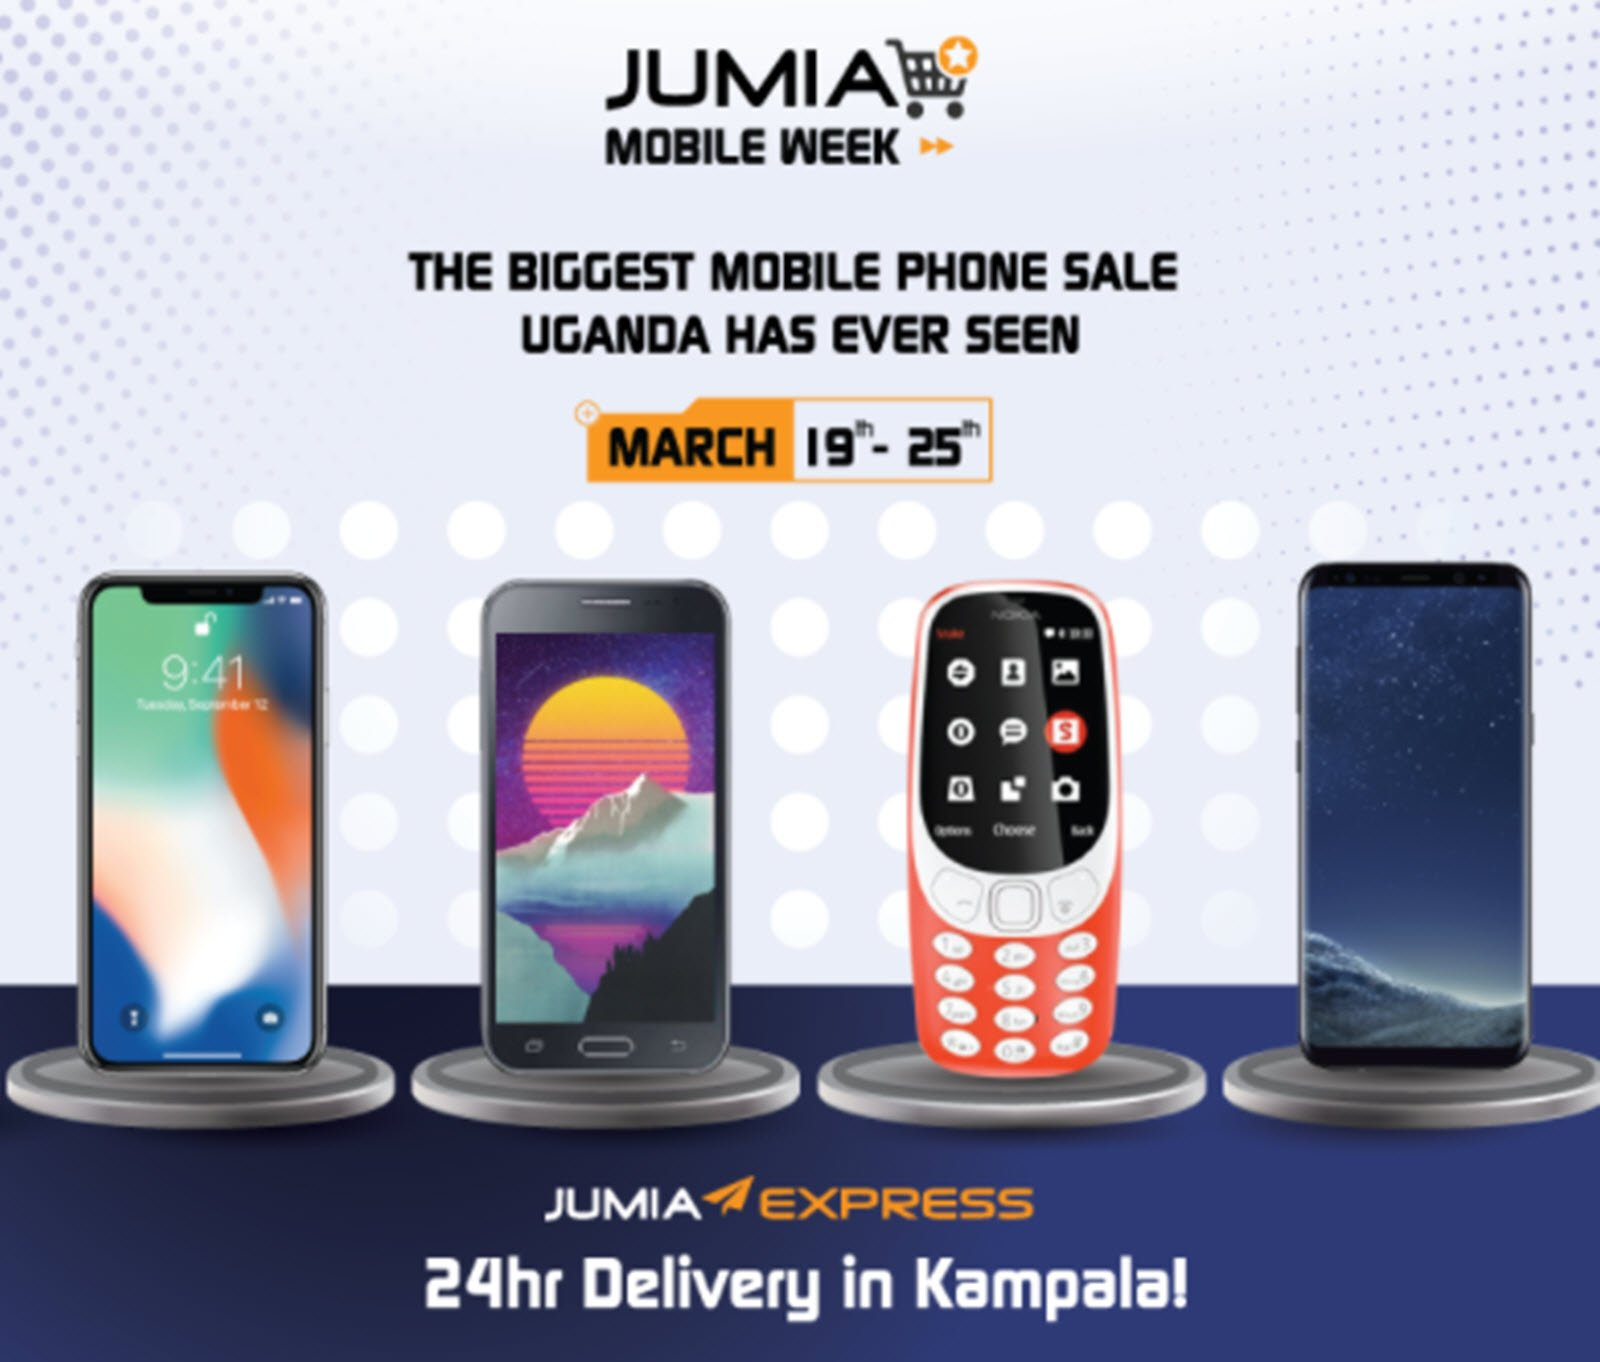 bfce328ff Jumia lists new smartphones for as low as UGX 100K in its Jumia Mobile Week  Promo